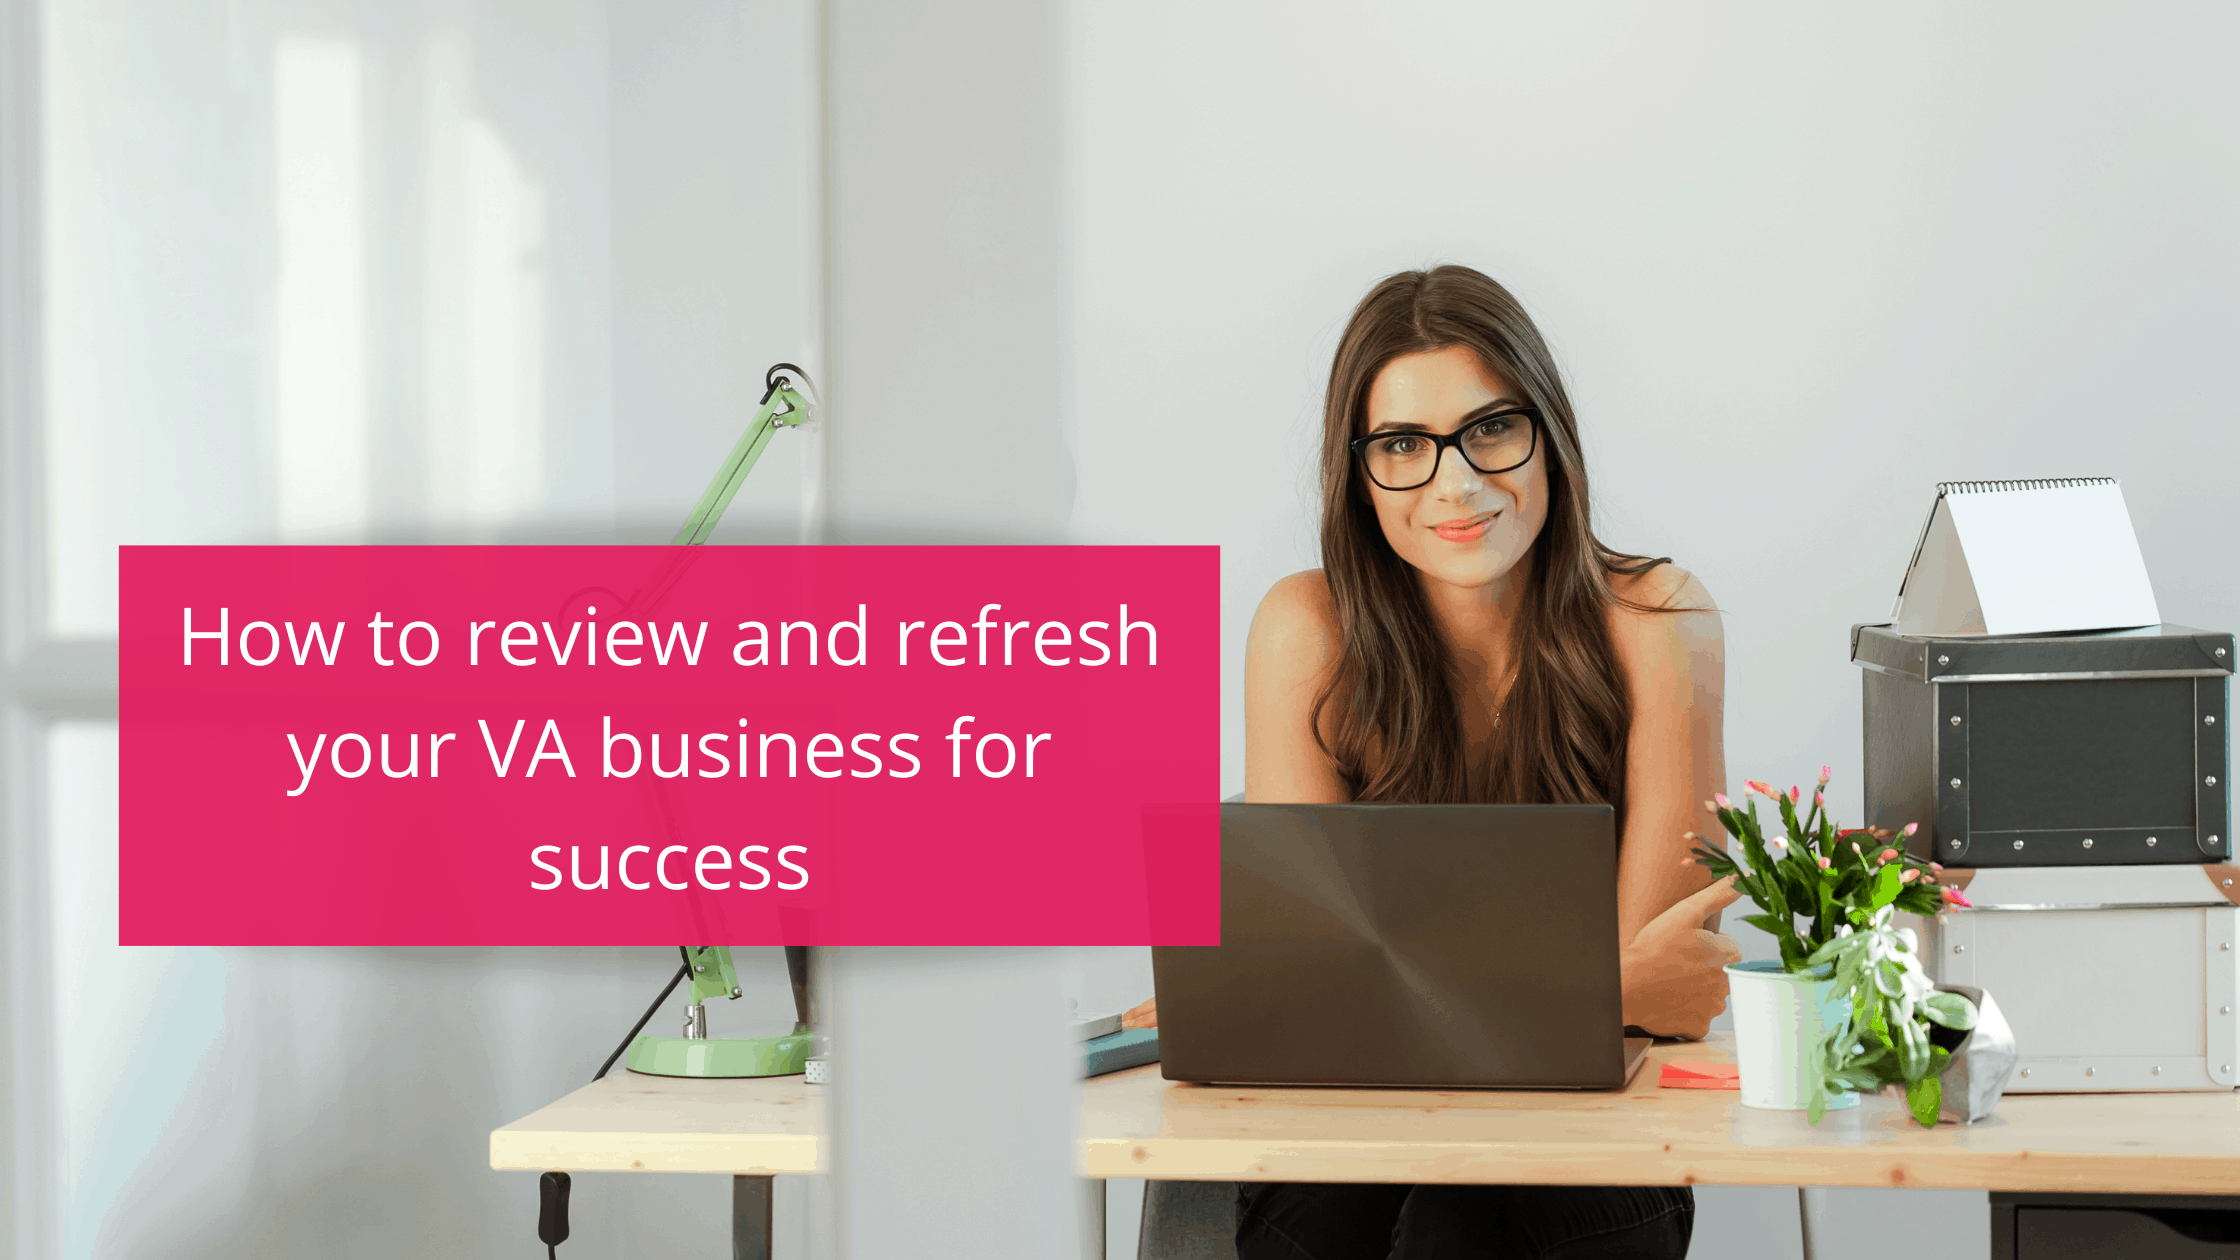 VA Training recommends a review and a refresh